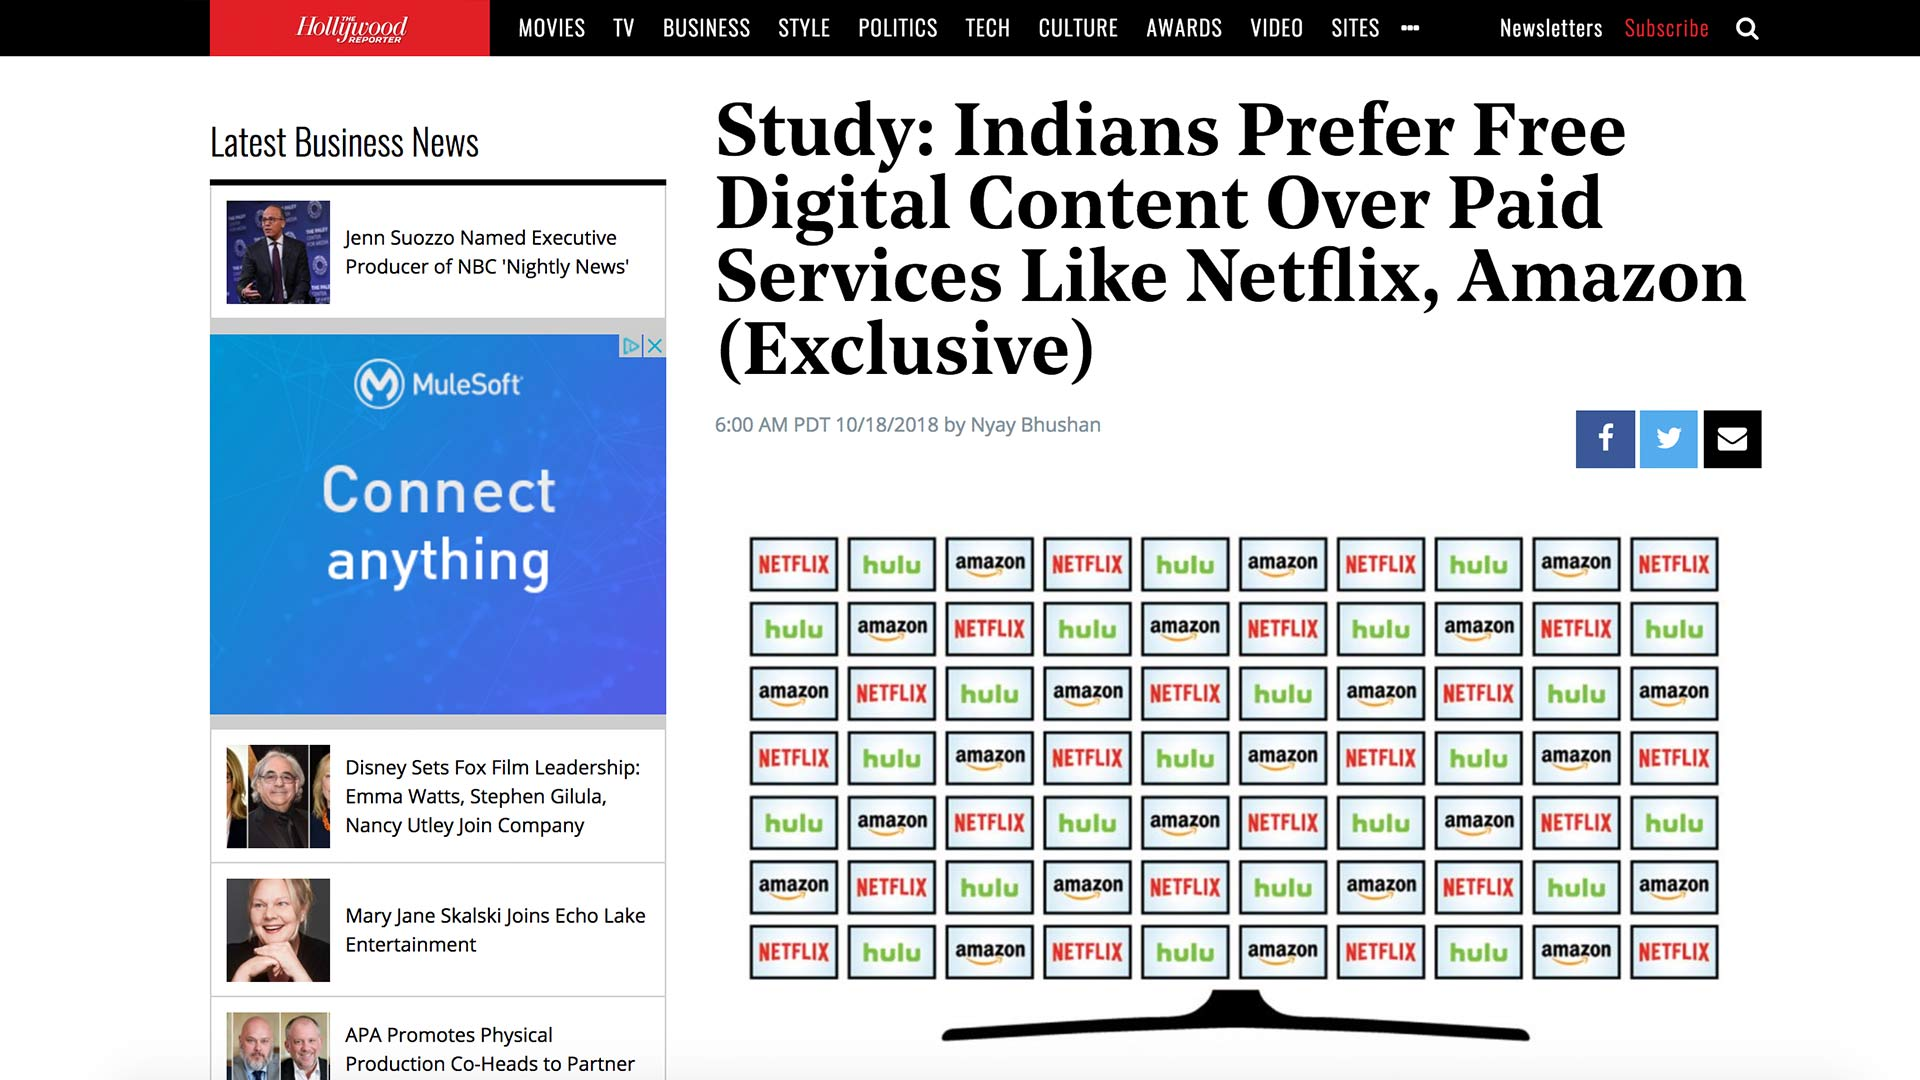 Fairness Rocks News Study: Indians Prefer Free Digital Content Over Paid Services Like Netflix, Amazon (Exclusive)